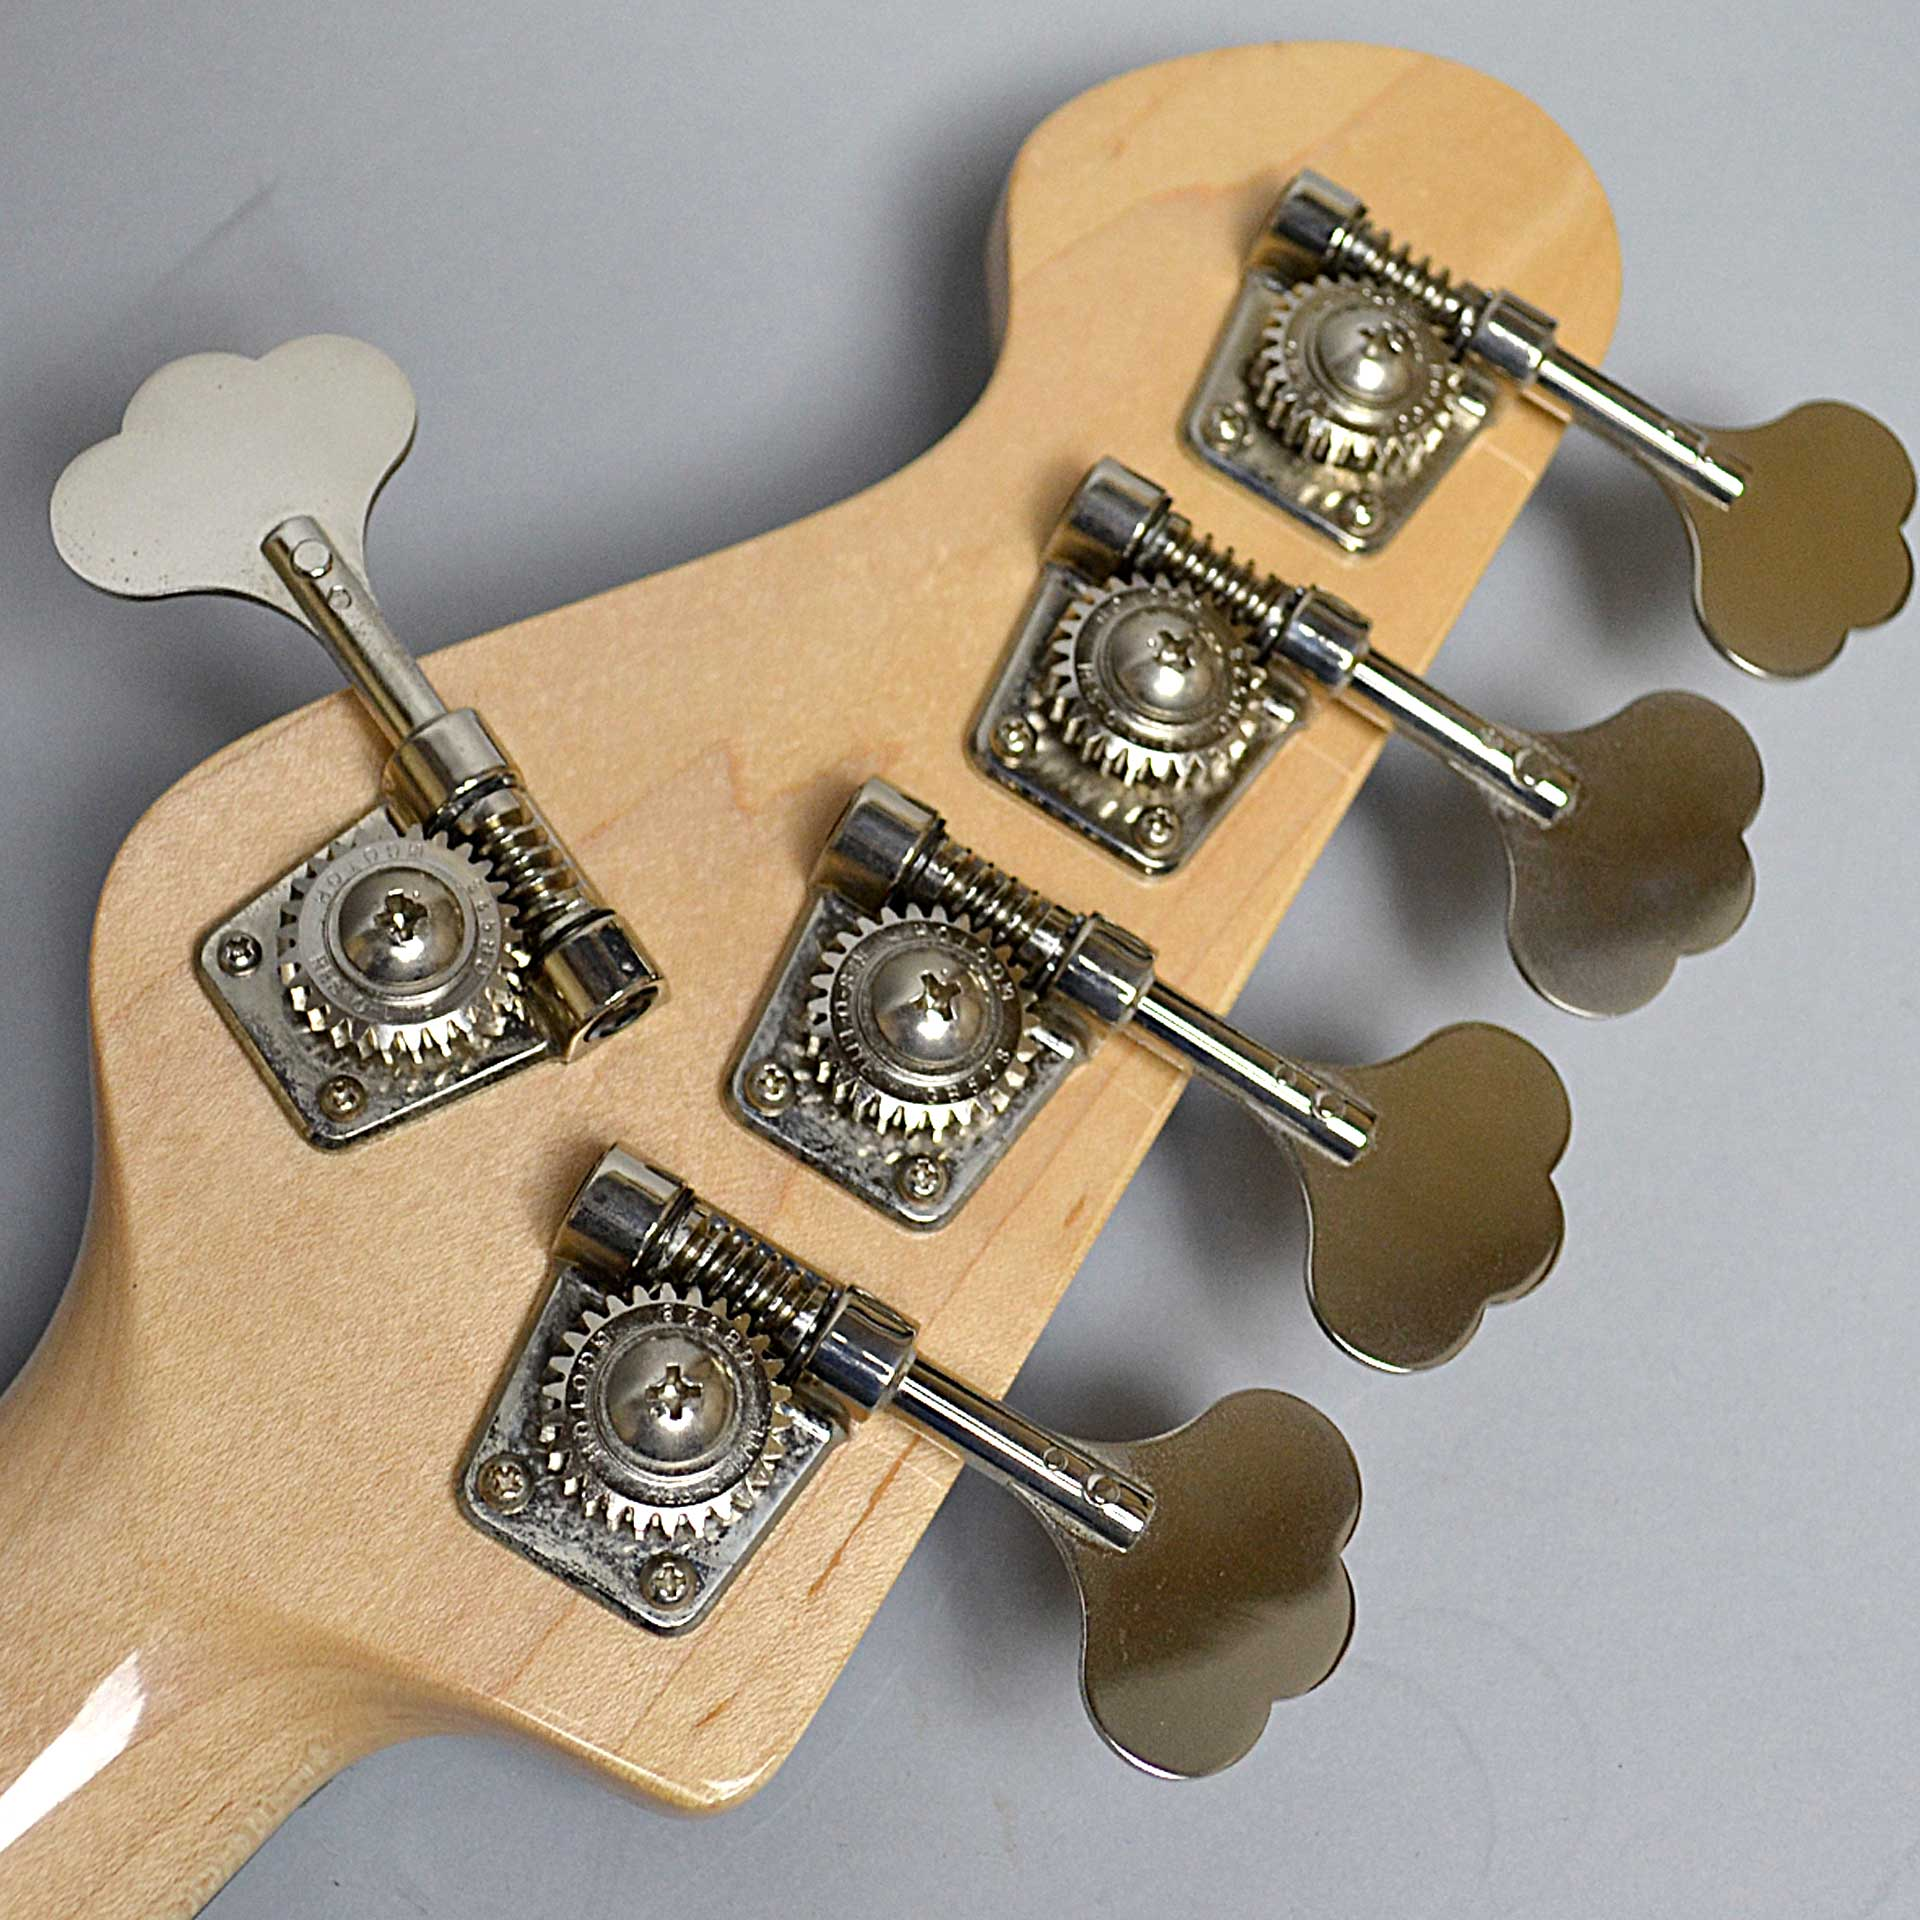 Classic Style J5(USED)のケース・その他画像